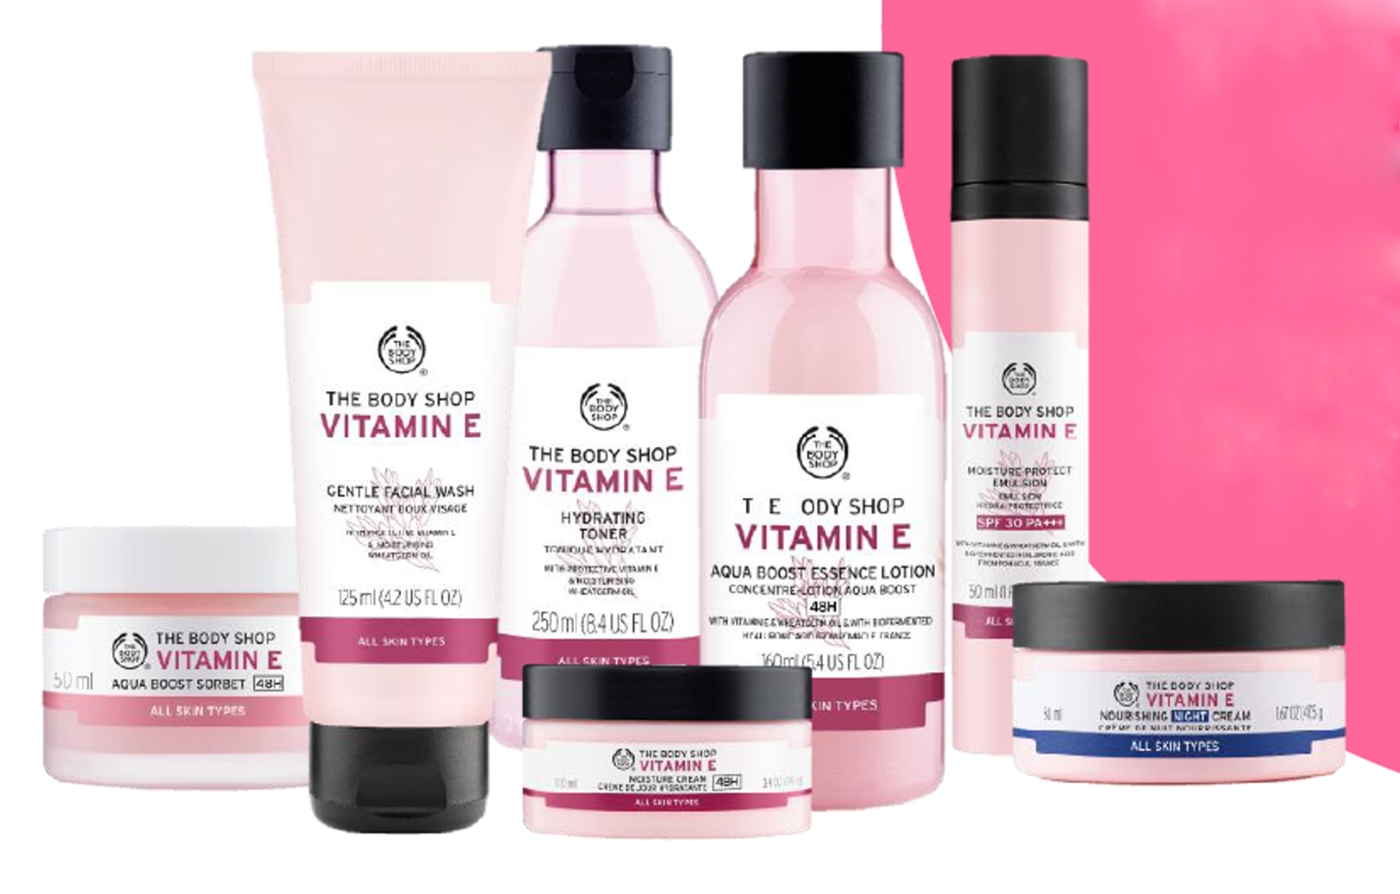 The Body Shop's new Vitamin E skincare range is now boosted by 100% natural origin hyaluronic acid. The collection includes: Vitamin E Nourishing Night Cream, Intense Moisture Cream, Aqua Sorbet, Gentle Facial Wash, Hydrating Toner, Cream Cleanser, Moisture-Protect Lip Care, Face Mist, Gentle Cleansing Facial Wipes, Overnight Serum-In-Oil, Refreshing Eyes Cube, E Eye Cream, and the new addition Vitamin E Moisture-Protect Emulsion SPF 30 PA+++.